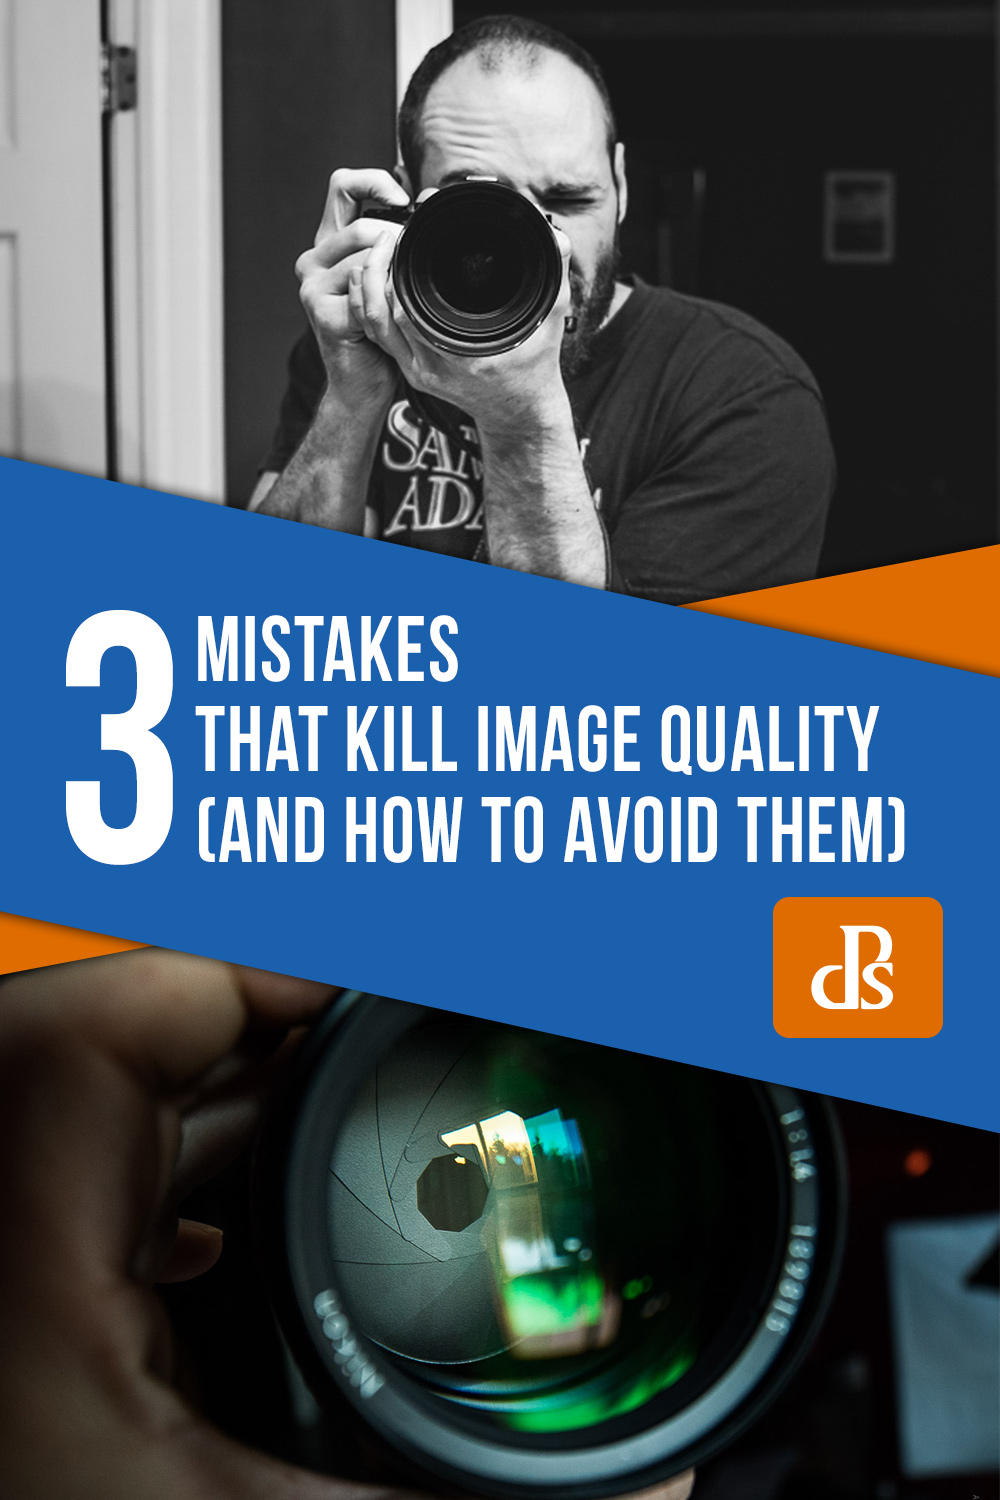 image-quality-mistakes